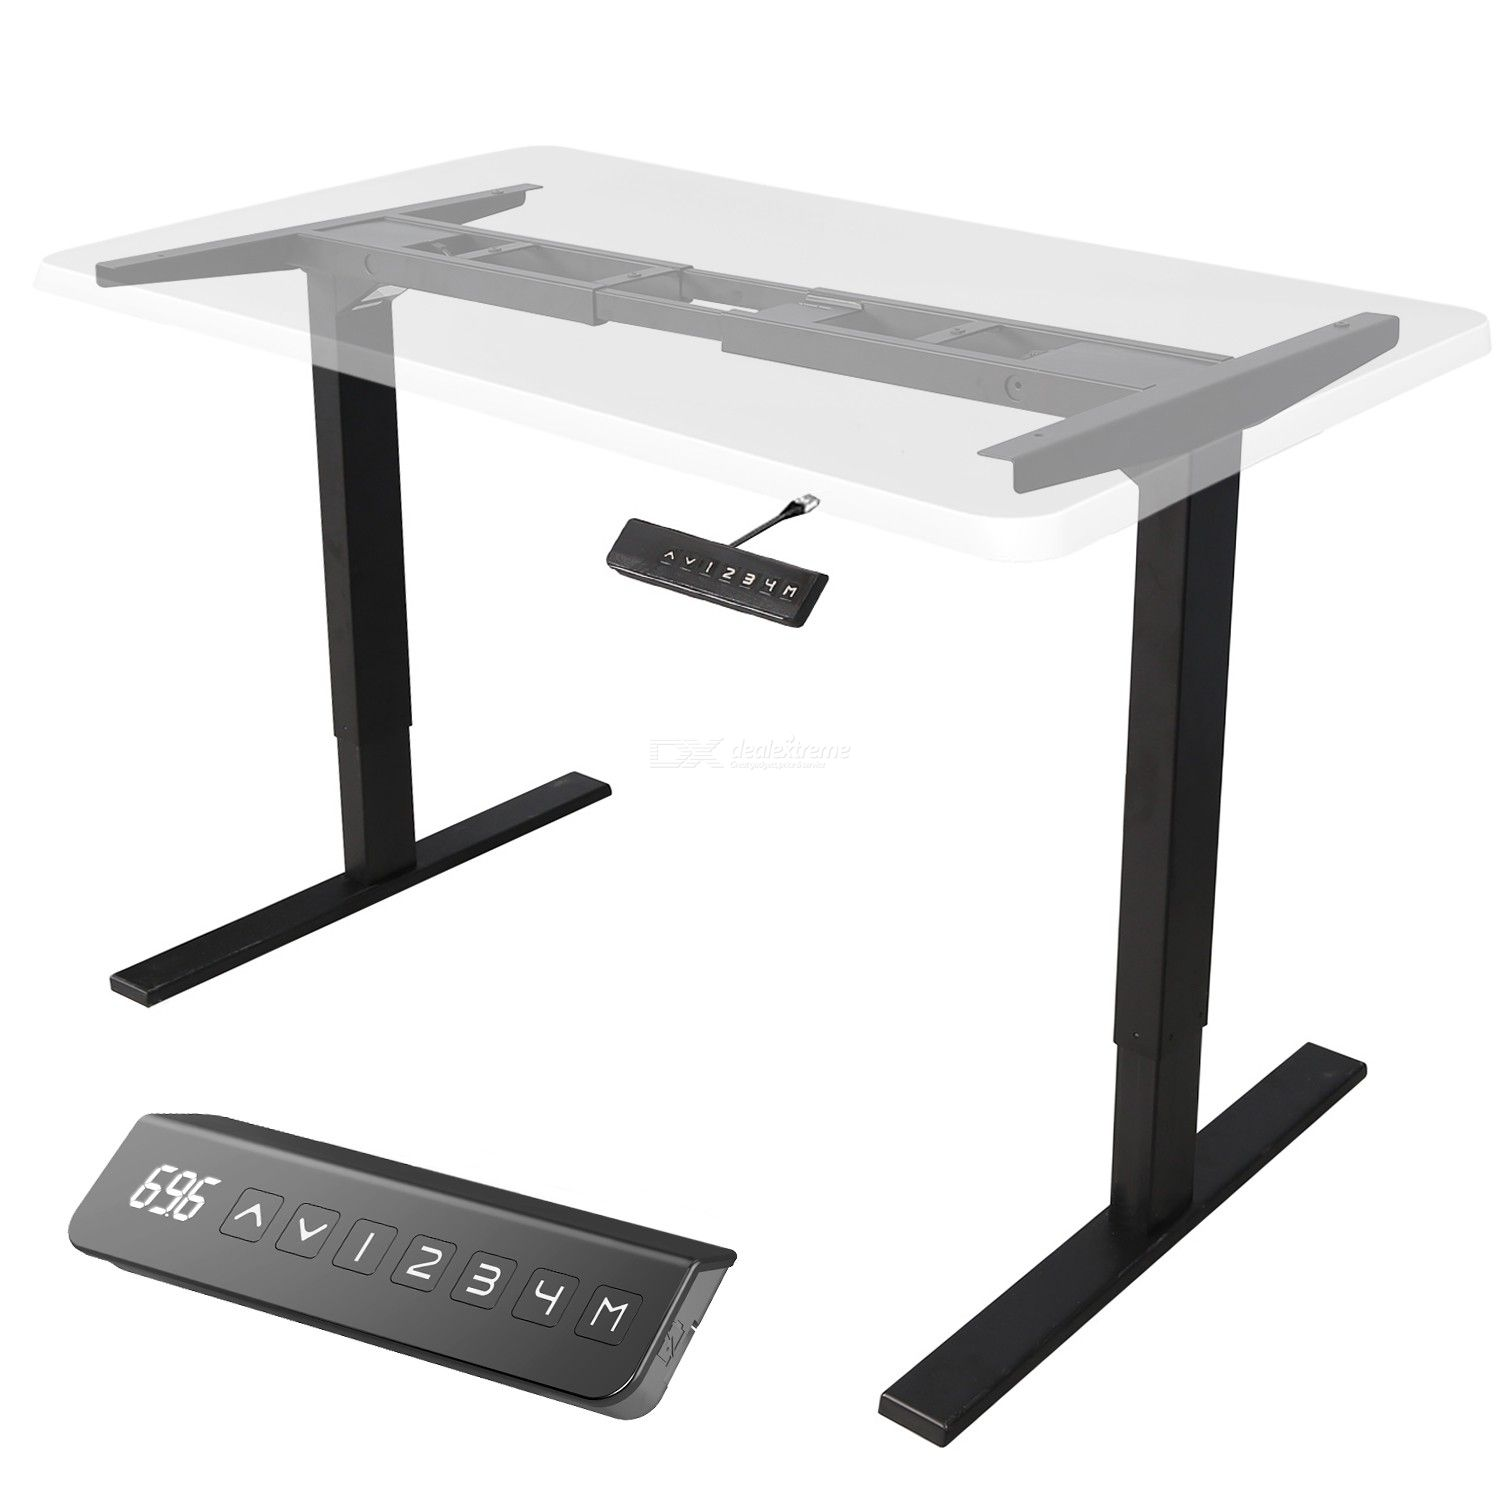 MAIDESITE Frame Electric Height Adjustable Table Frame ONLY Spain, Germany and France